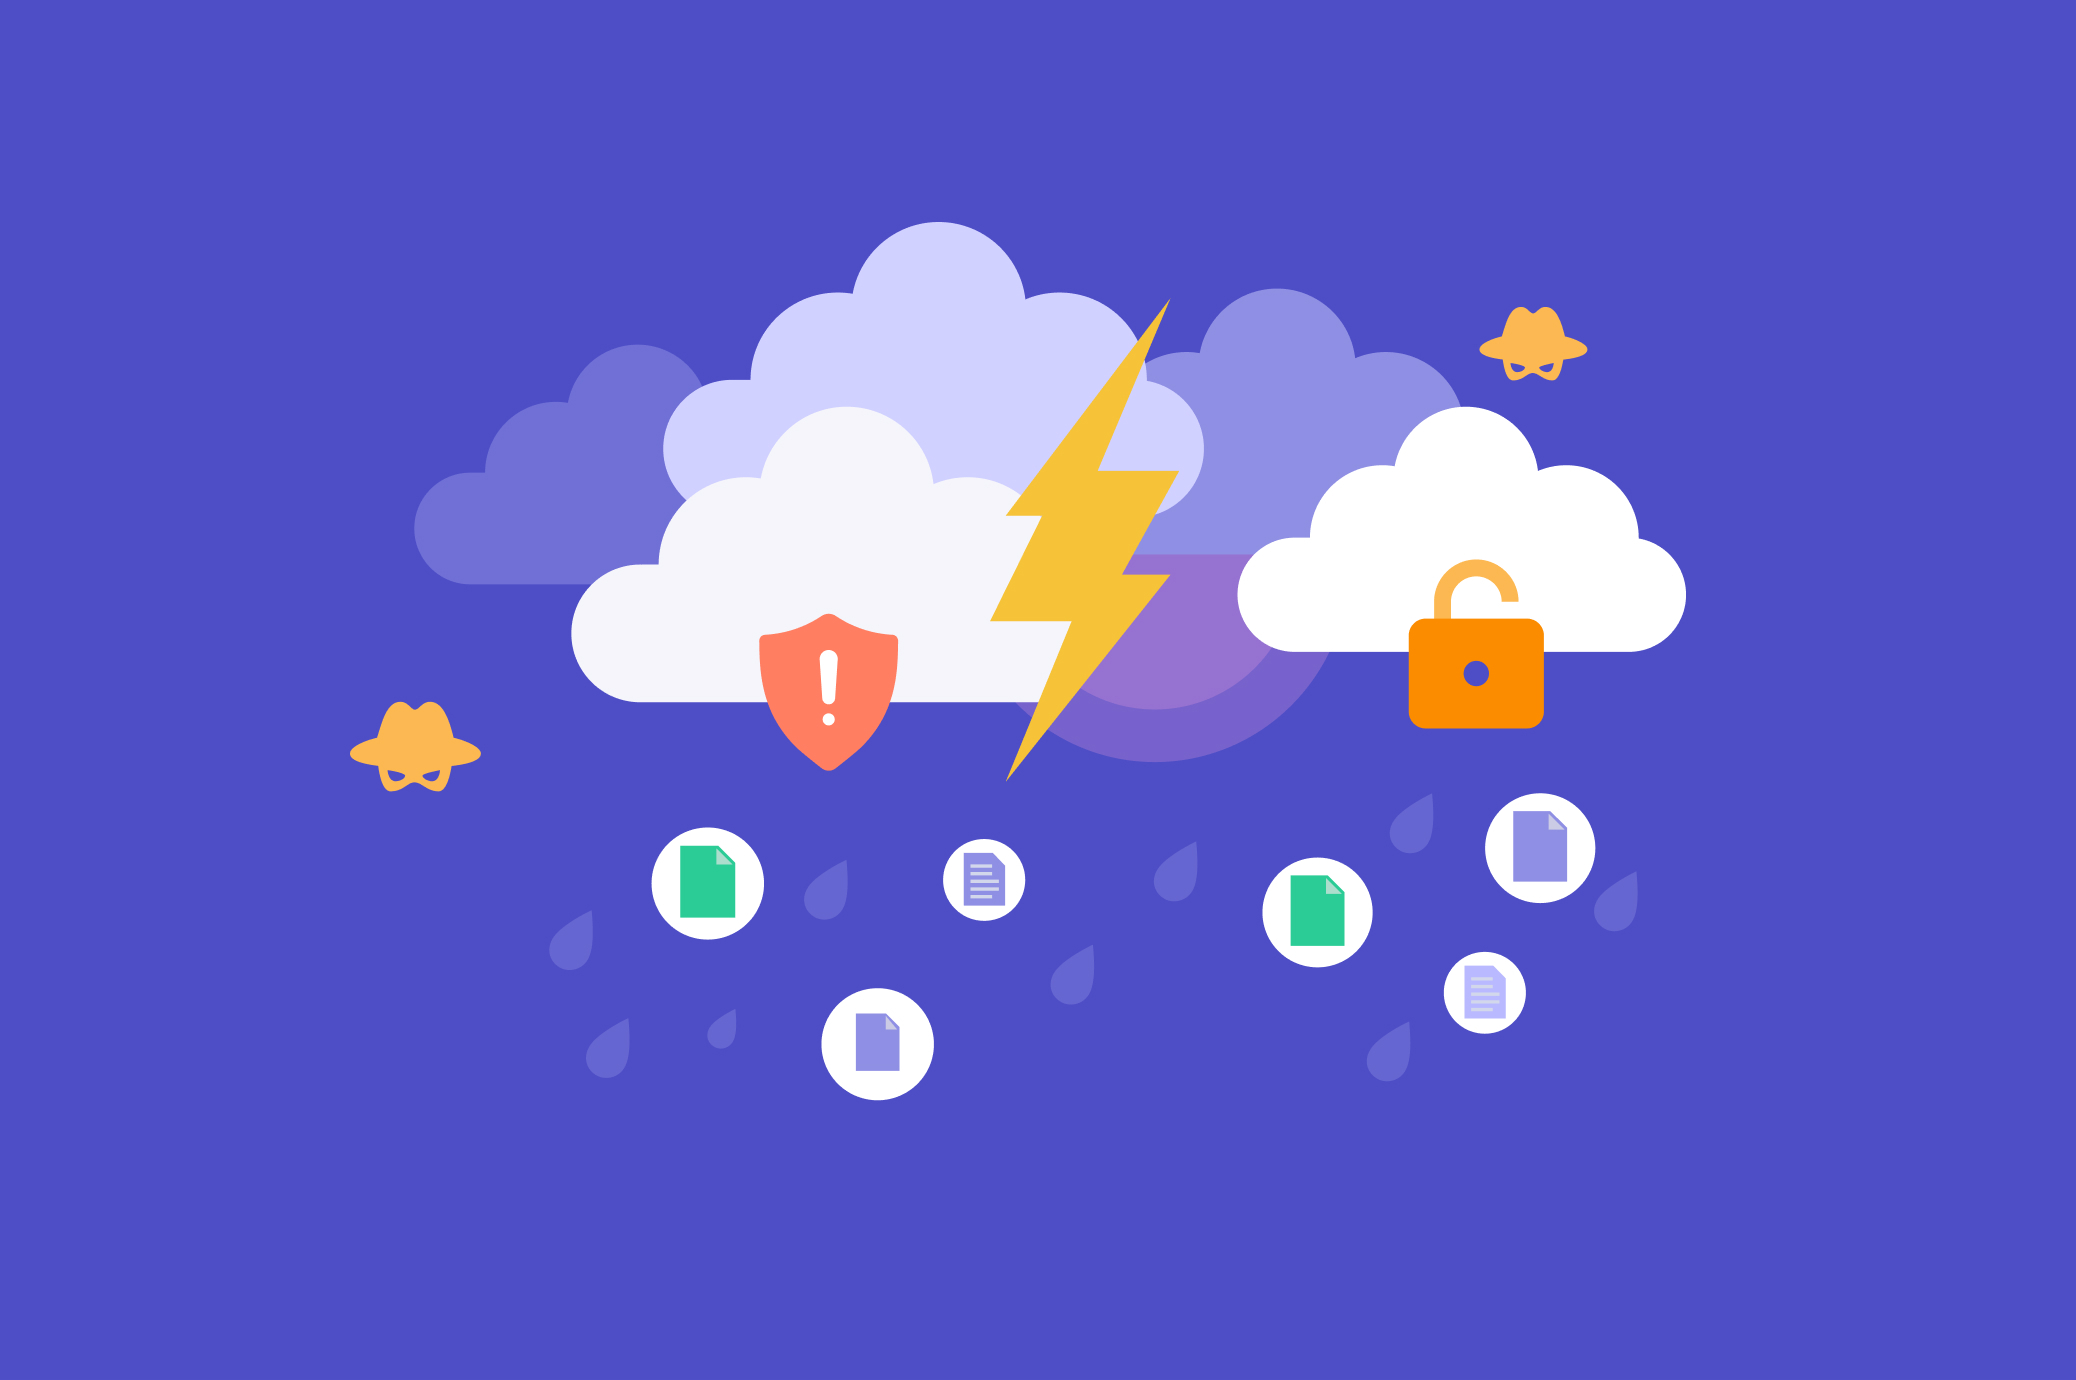 Weather Forecast: Cloudy with High Chances of SaaS Data Breaches